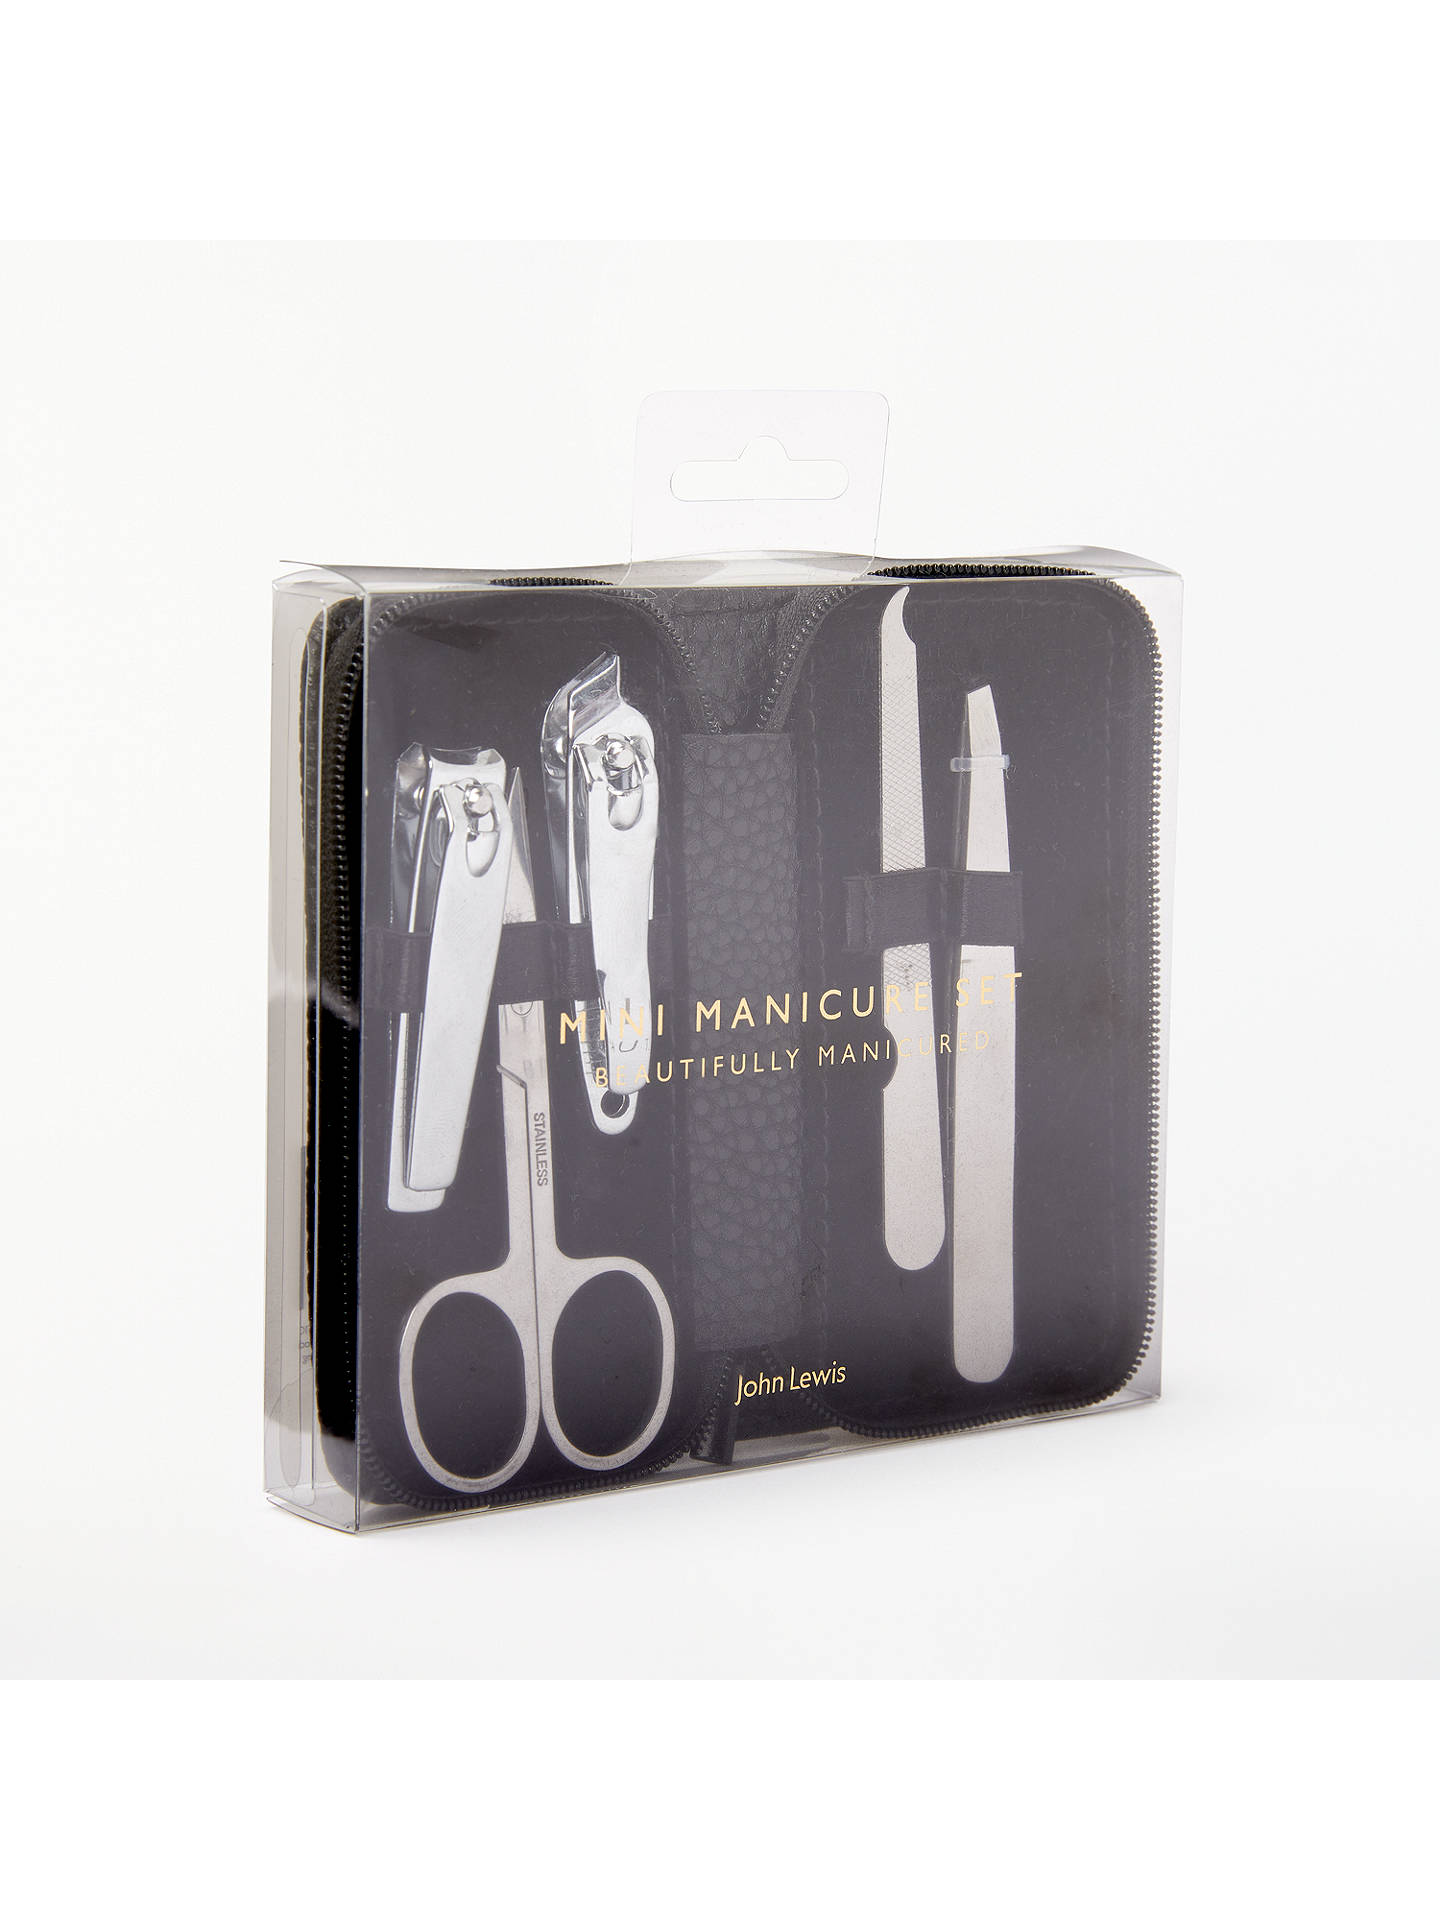 Buy John Lewis & Partners 5 Piece Mini Manicure Set Online at johnlewis.com